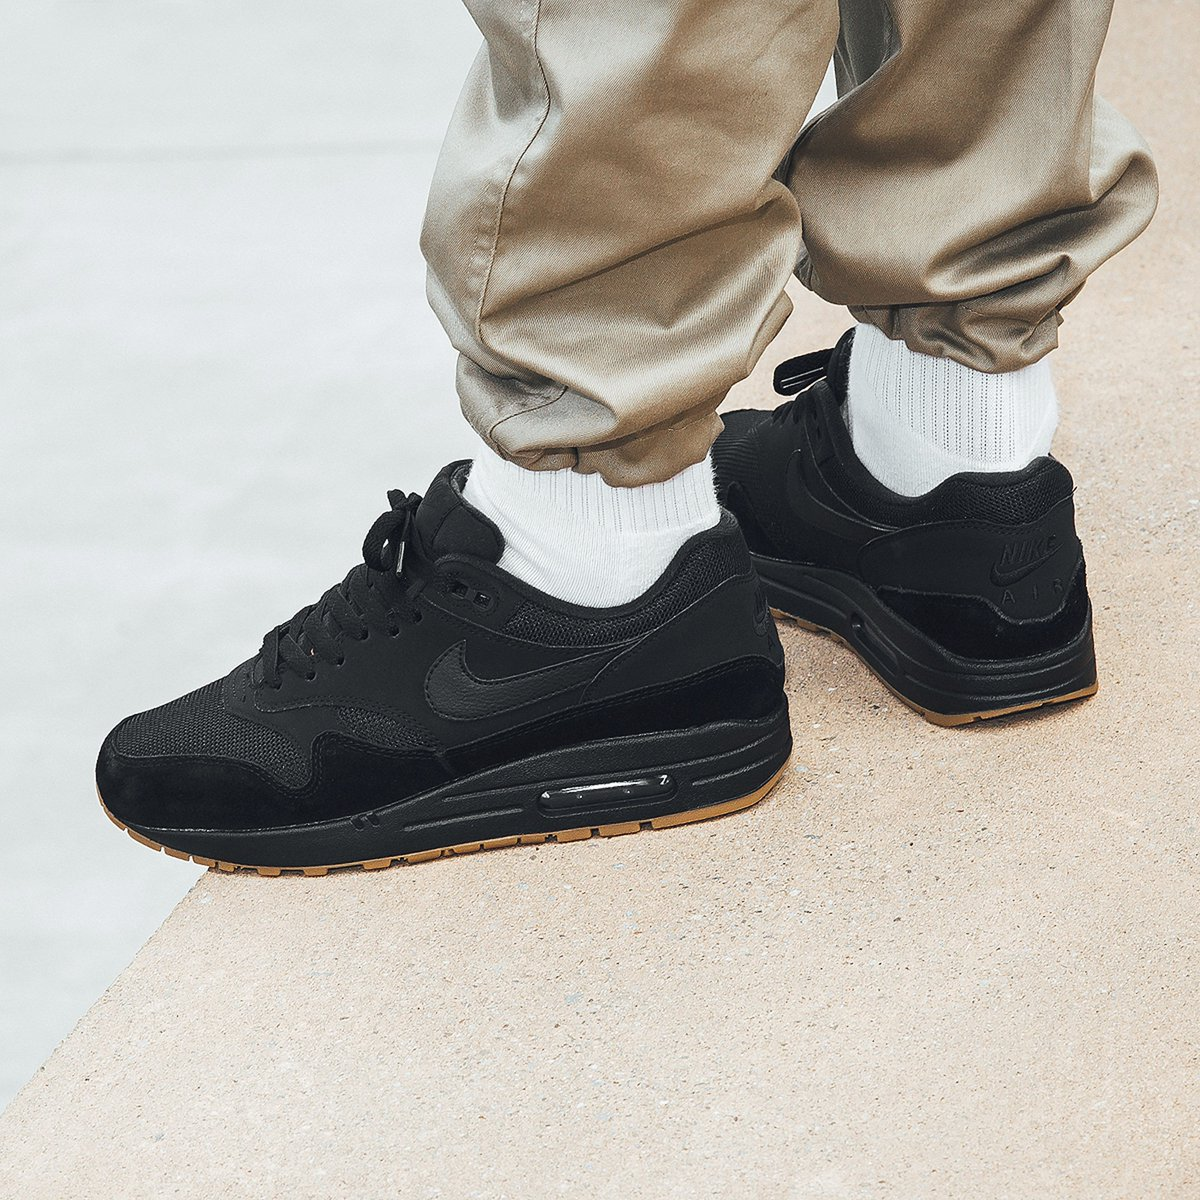 air max 1 all black gum sole